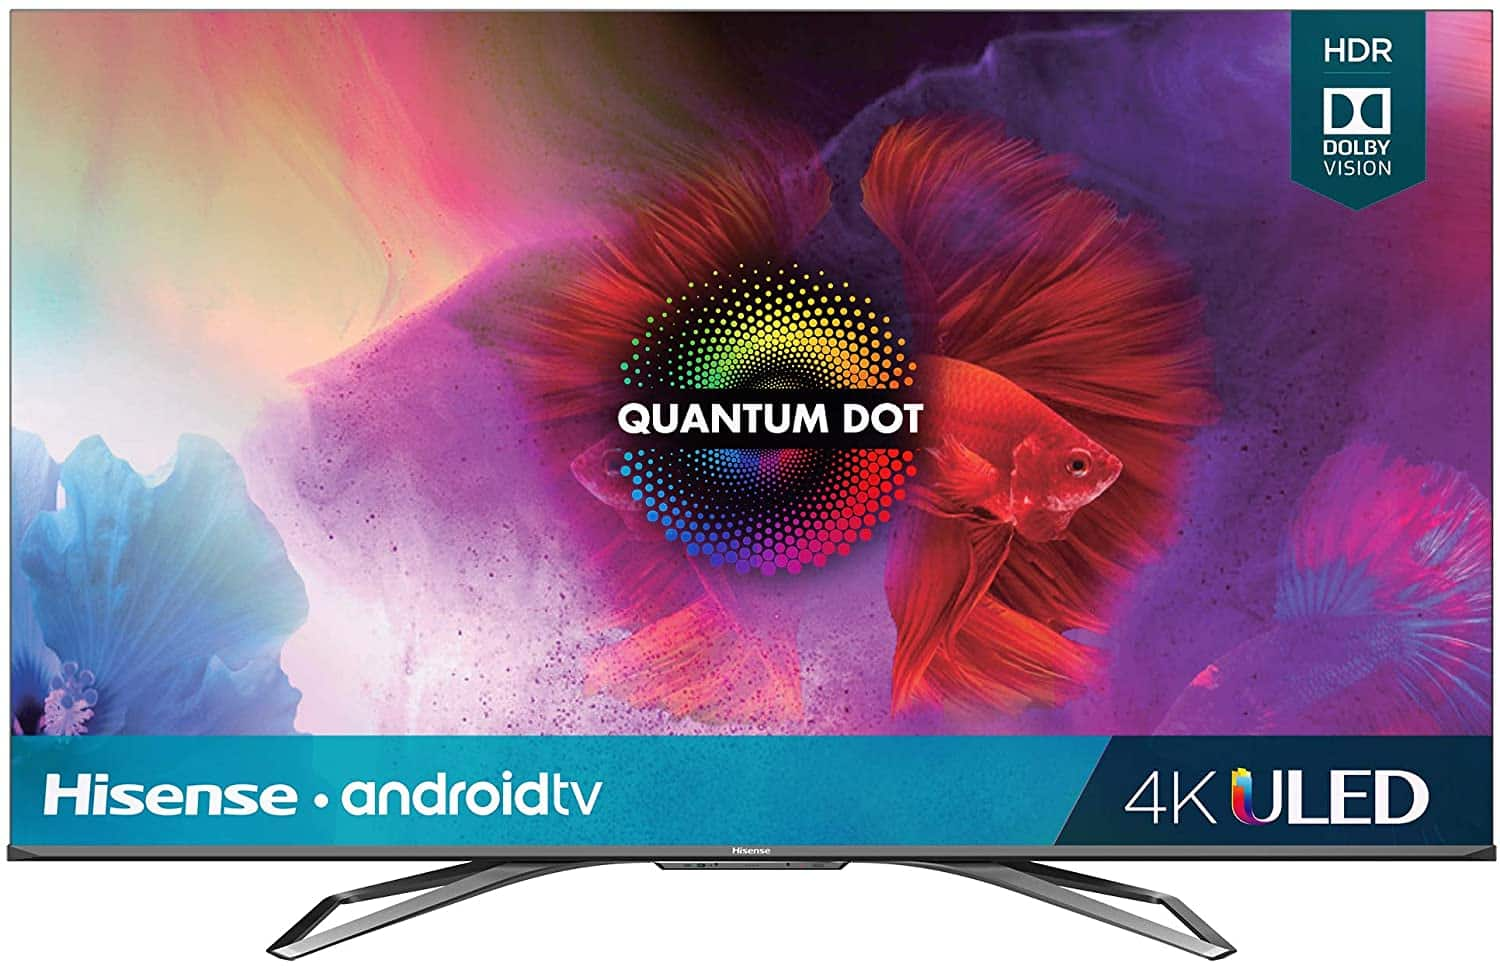 Amazon.com: Hisense 55-Inch Class H9 Quantum Series Android 4K ULED Smart TV with Hand-Free Voice Control (55H9G, 2020 Model): Electronics $649.99